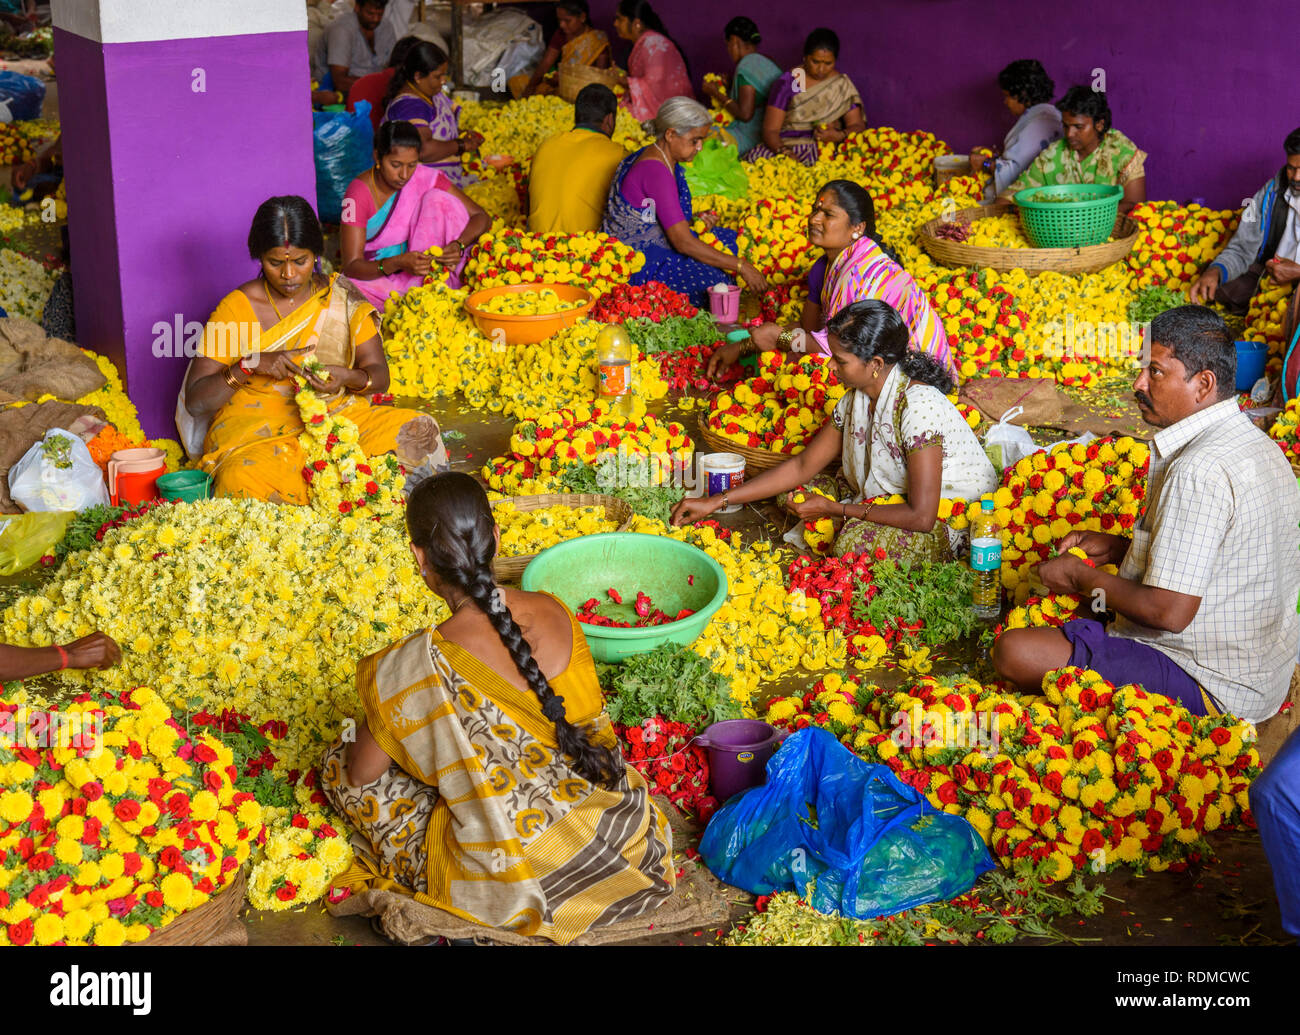 Women making flower garlands for sale, Krishnarajendra market, Banaglore, Bengaluru, Karnataka, India - Stock Image